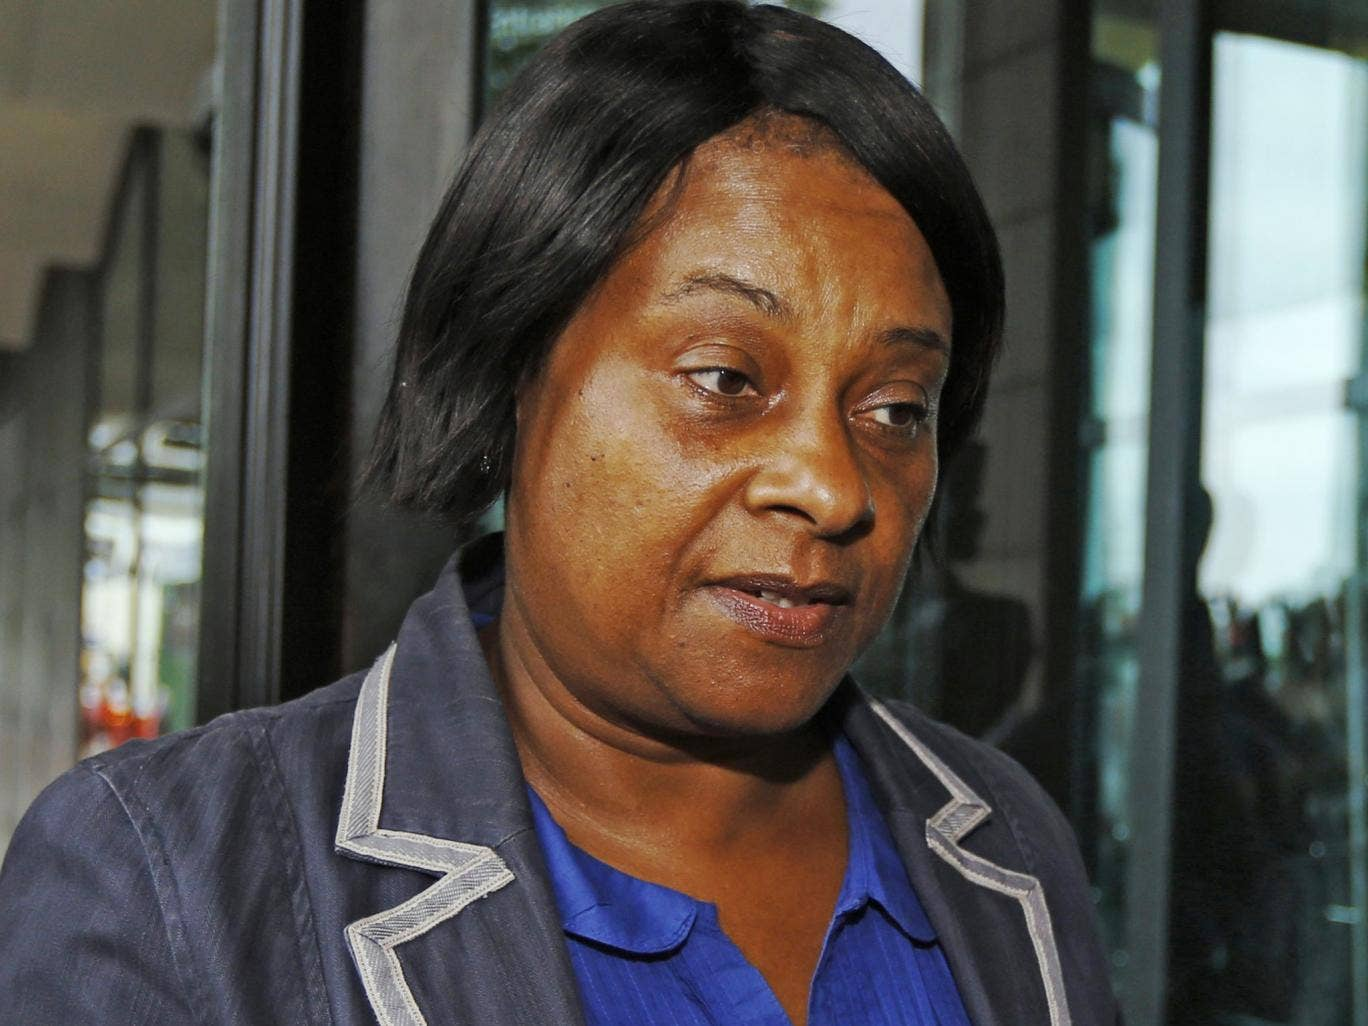 The mother of Stephen Lawrence, Doreen Lawrence, arriving at the Home Affairs Select Committee